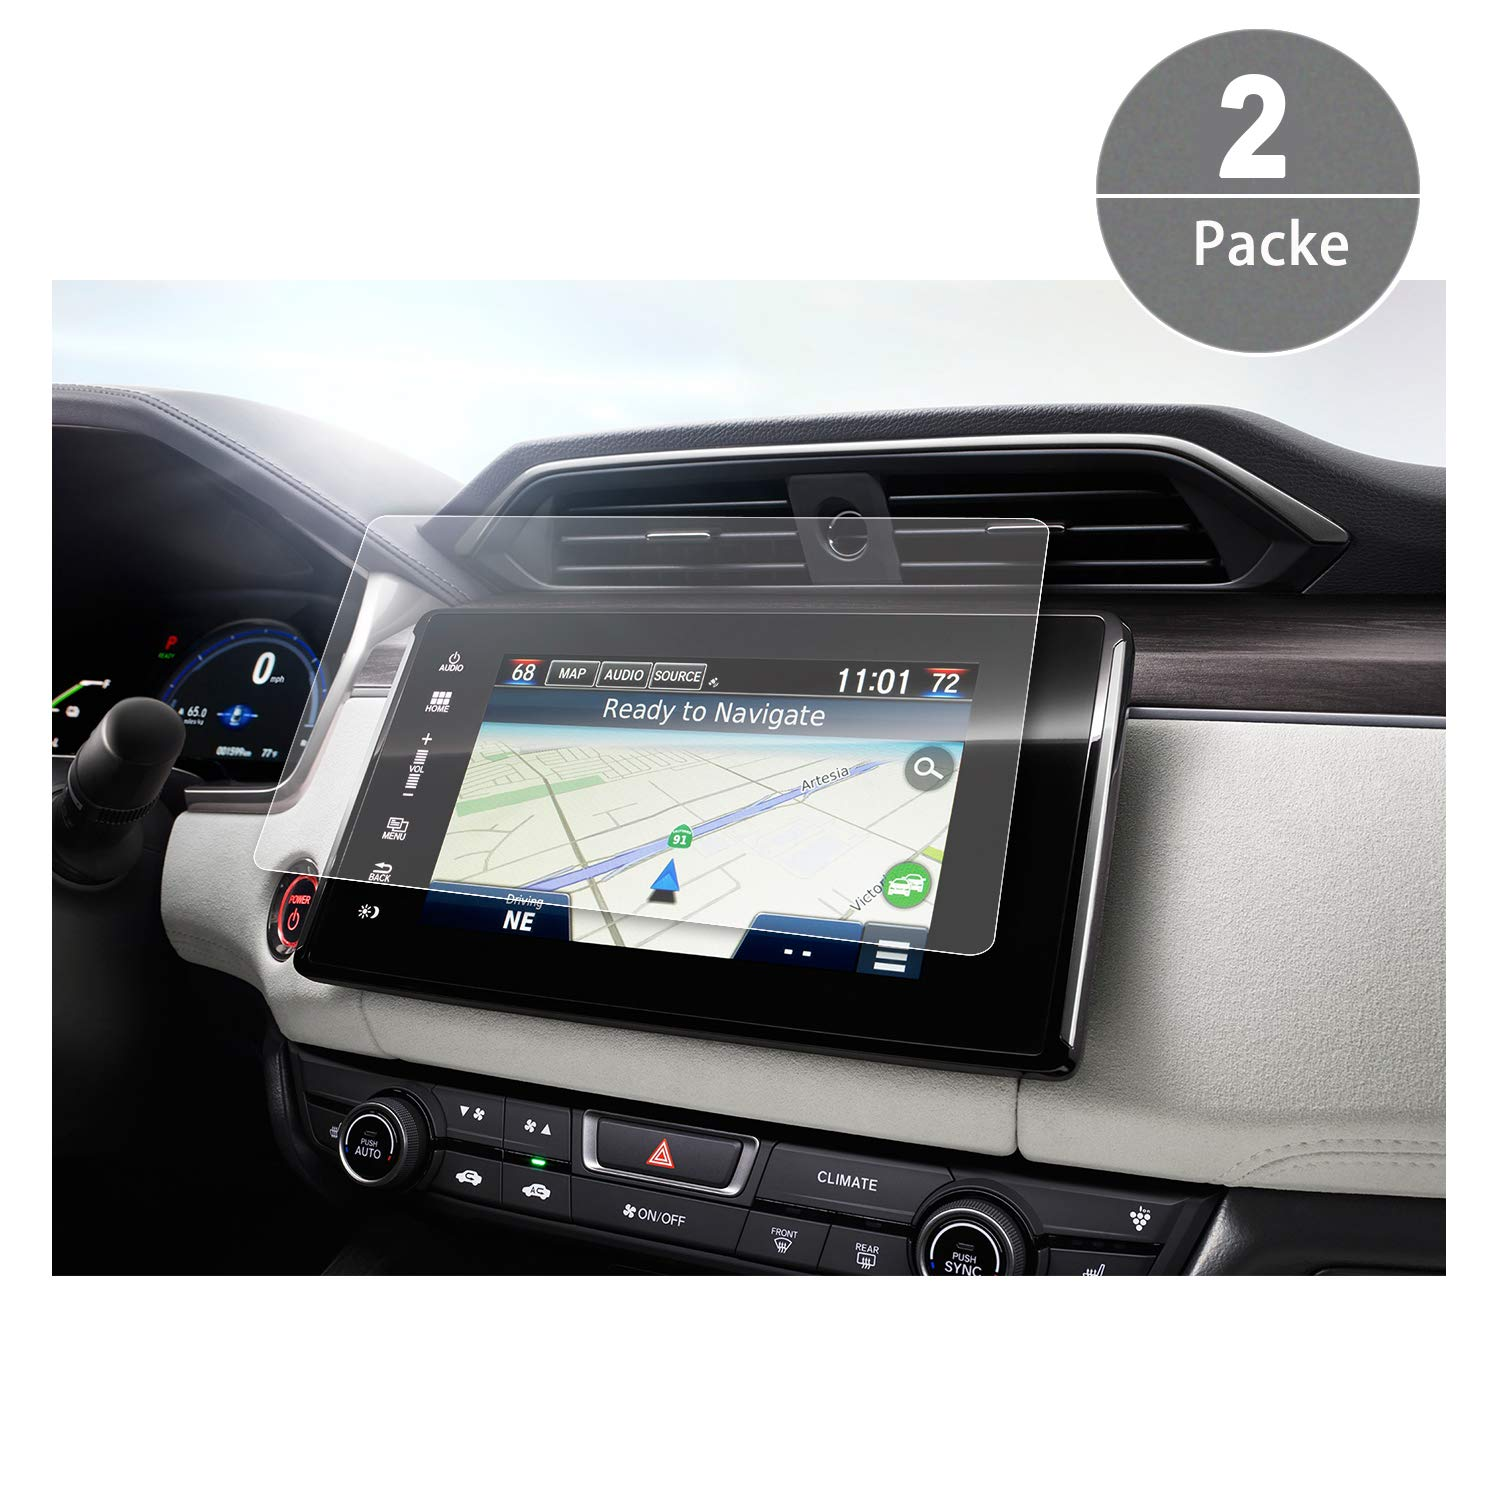 [2 Packs] 2018 Honda Clarity Connect HondaLink 8 Inch Crystal Clear Center Navigation Touch PET Plastic Screen Protector High Clarity Anti-Glare